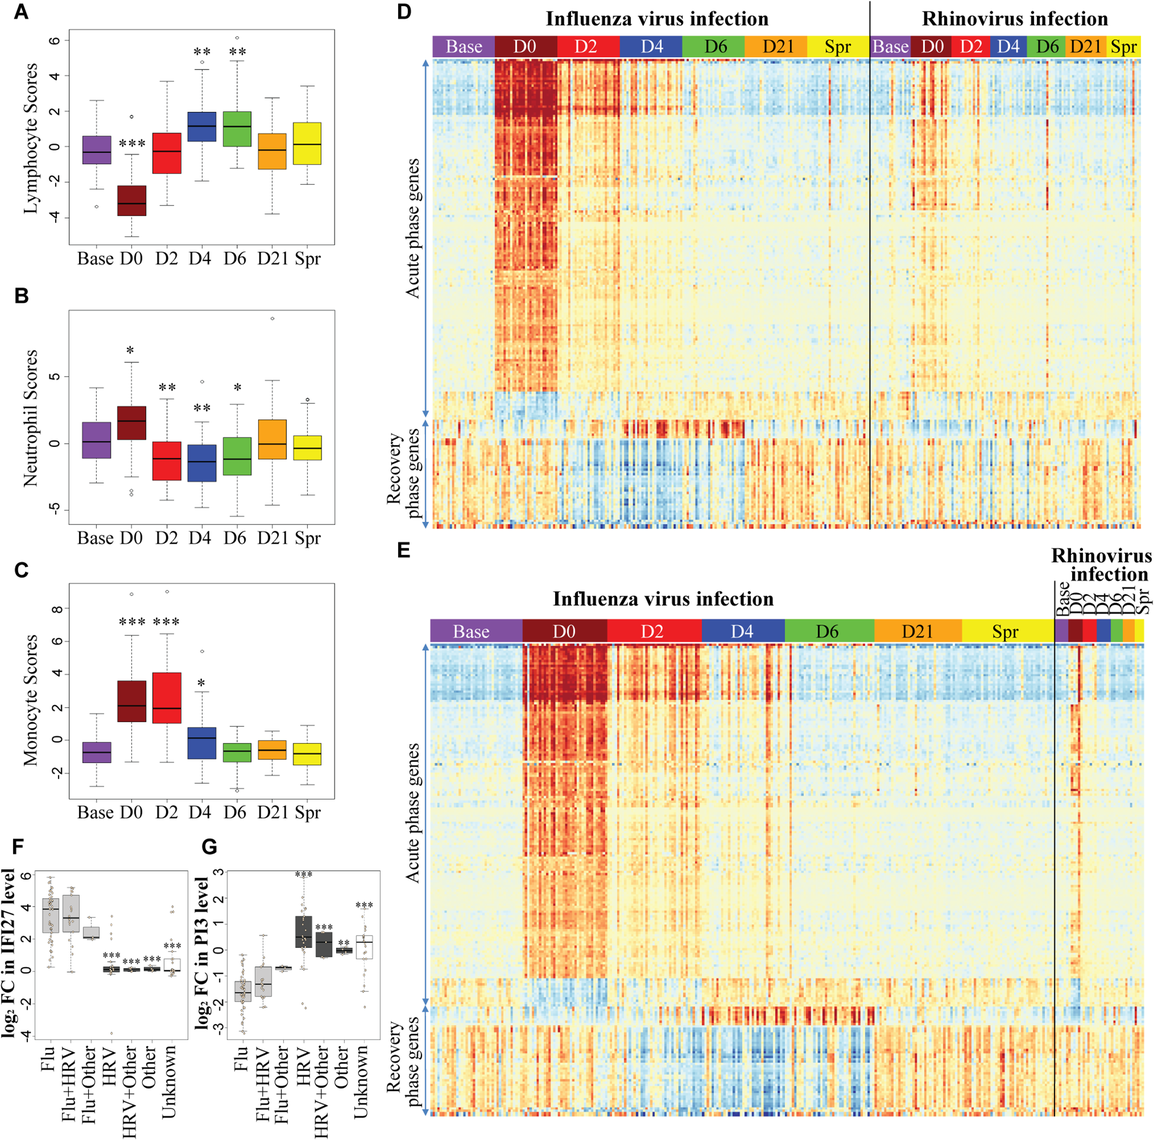 A robust and dynamic host transcriptional response to influenza virus infection.